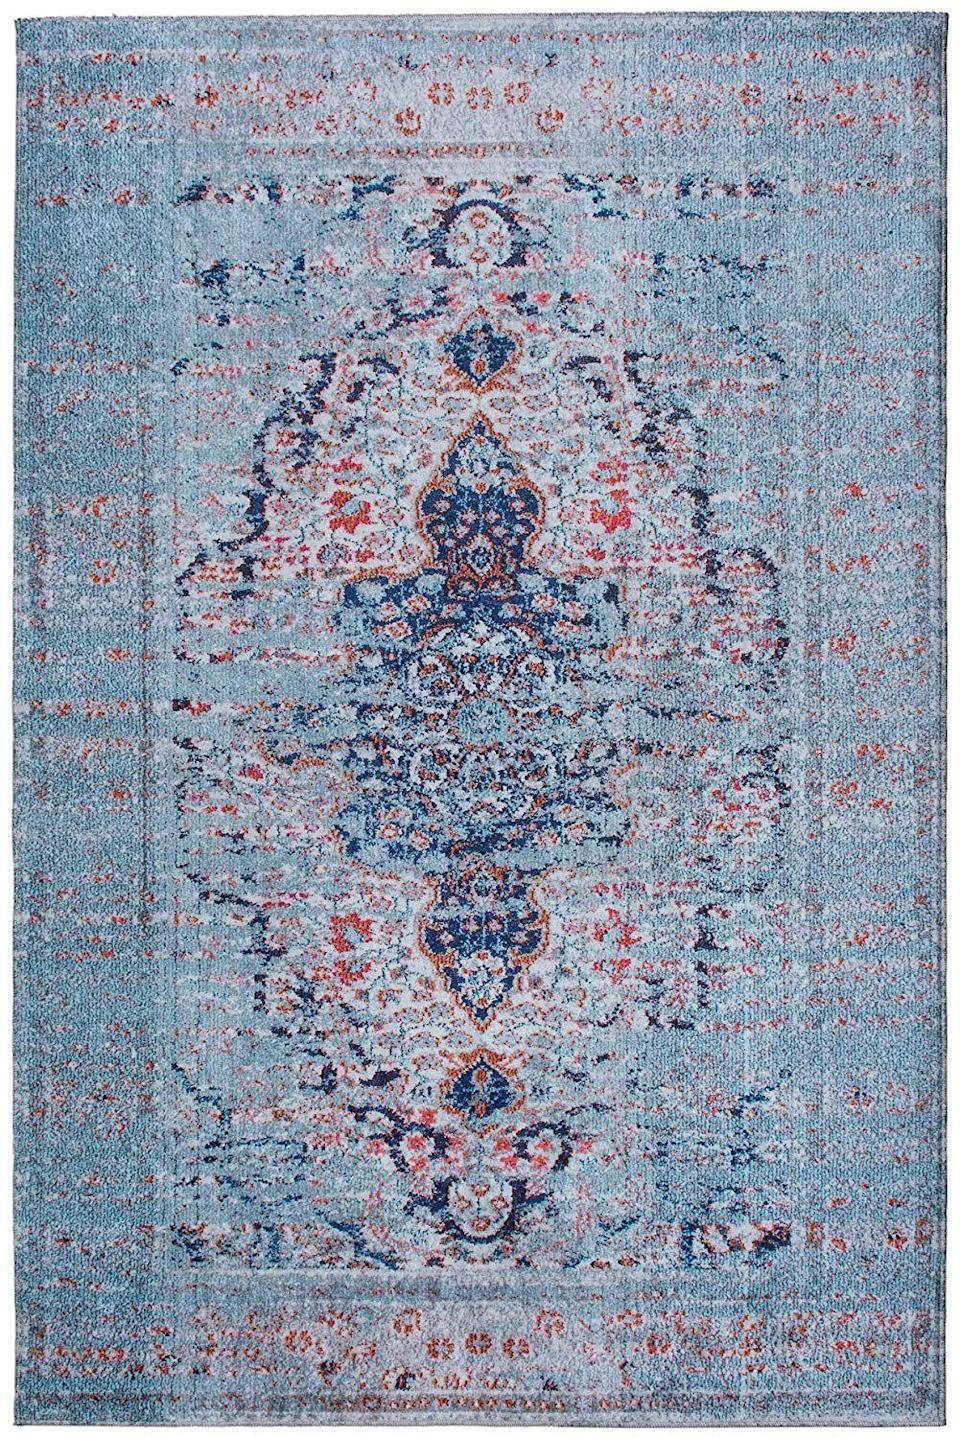 "<p><strong>Mylife Rugs</strong></p><p>amazon.com</p><p><strong>$99.95</strong></p><p><a href=""http://www.amazon.com/dp/B07KGFMNJG/?tag=syn-yahoo-20&ascsubtag=%5Bartid%7C10057.g.23303205%5Bsrc%7Cyahoo-us"" rel=""nofollow noopener"" target=""_blank"" data-ylk=""slk:BUY NOW"" class=""link rapid-noclick-resp"">BUY NOW</a></p><p>Another option from Mylife, this blue distressed rug will look perfectly soft and moody in any room, and is easy as pie to clean. </p>"